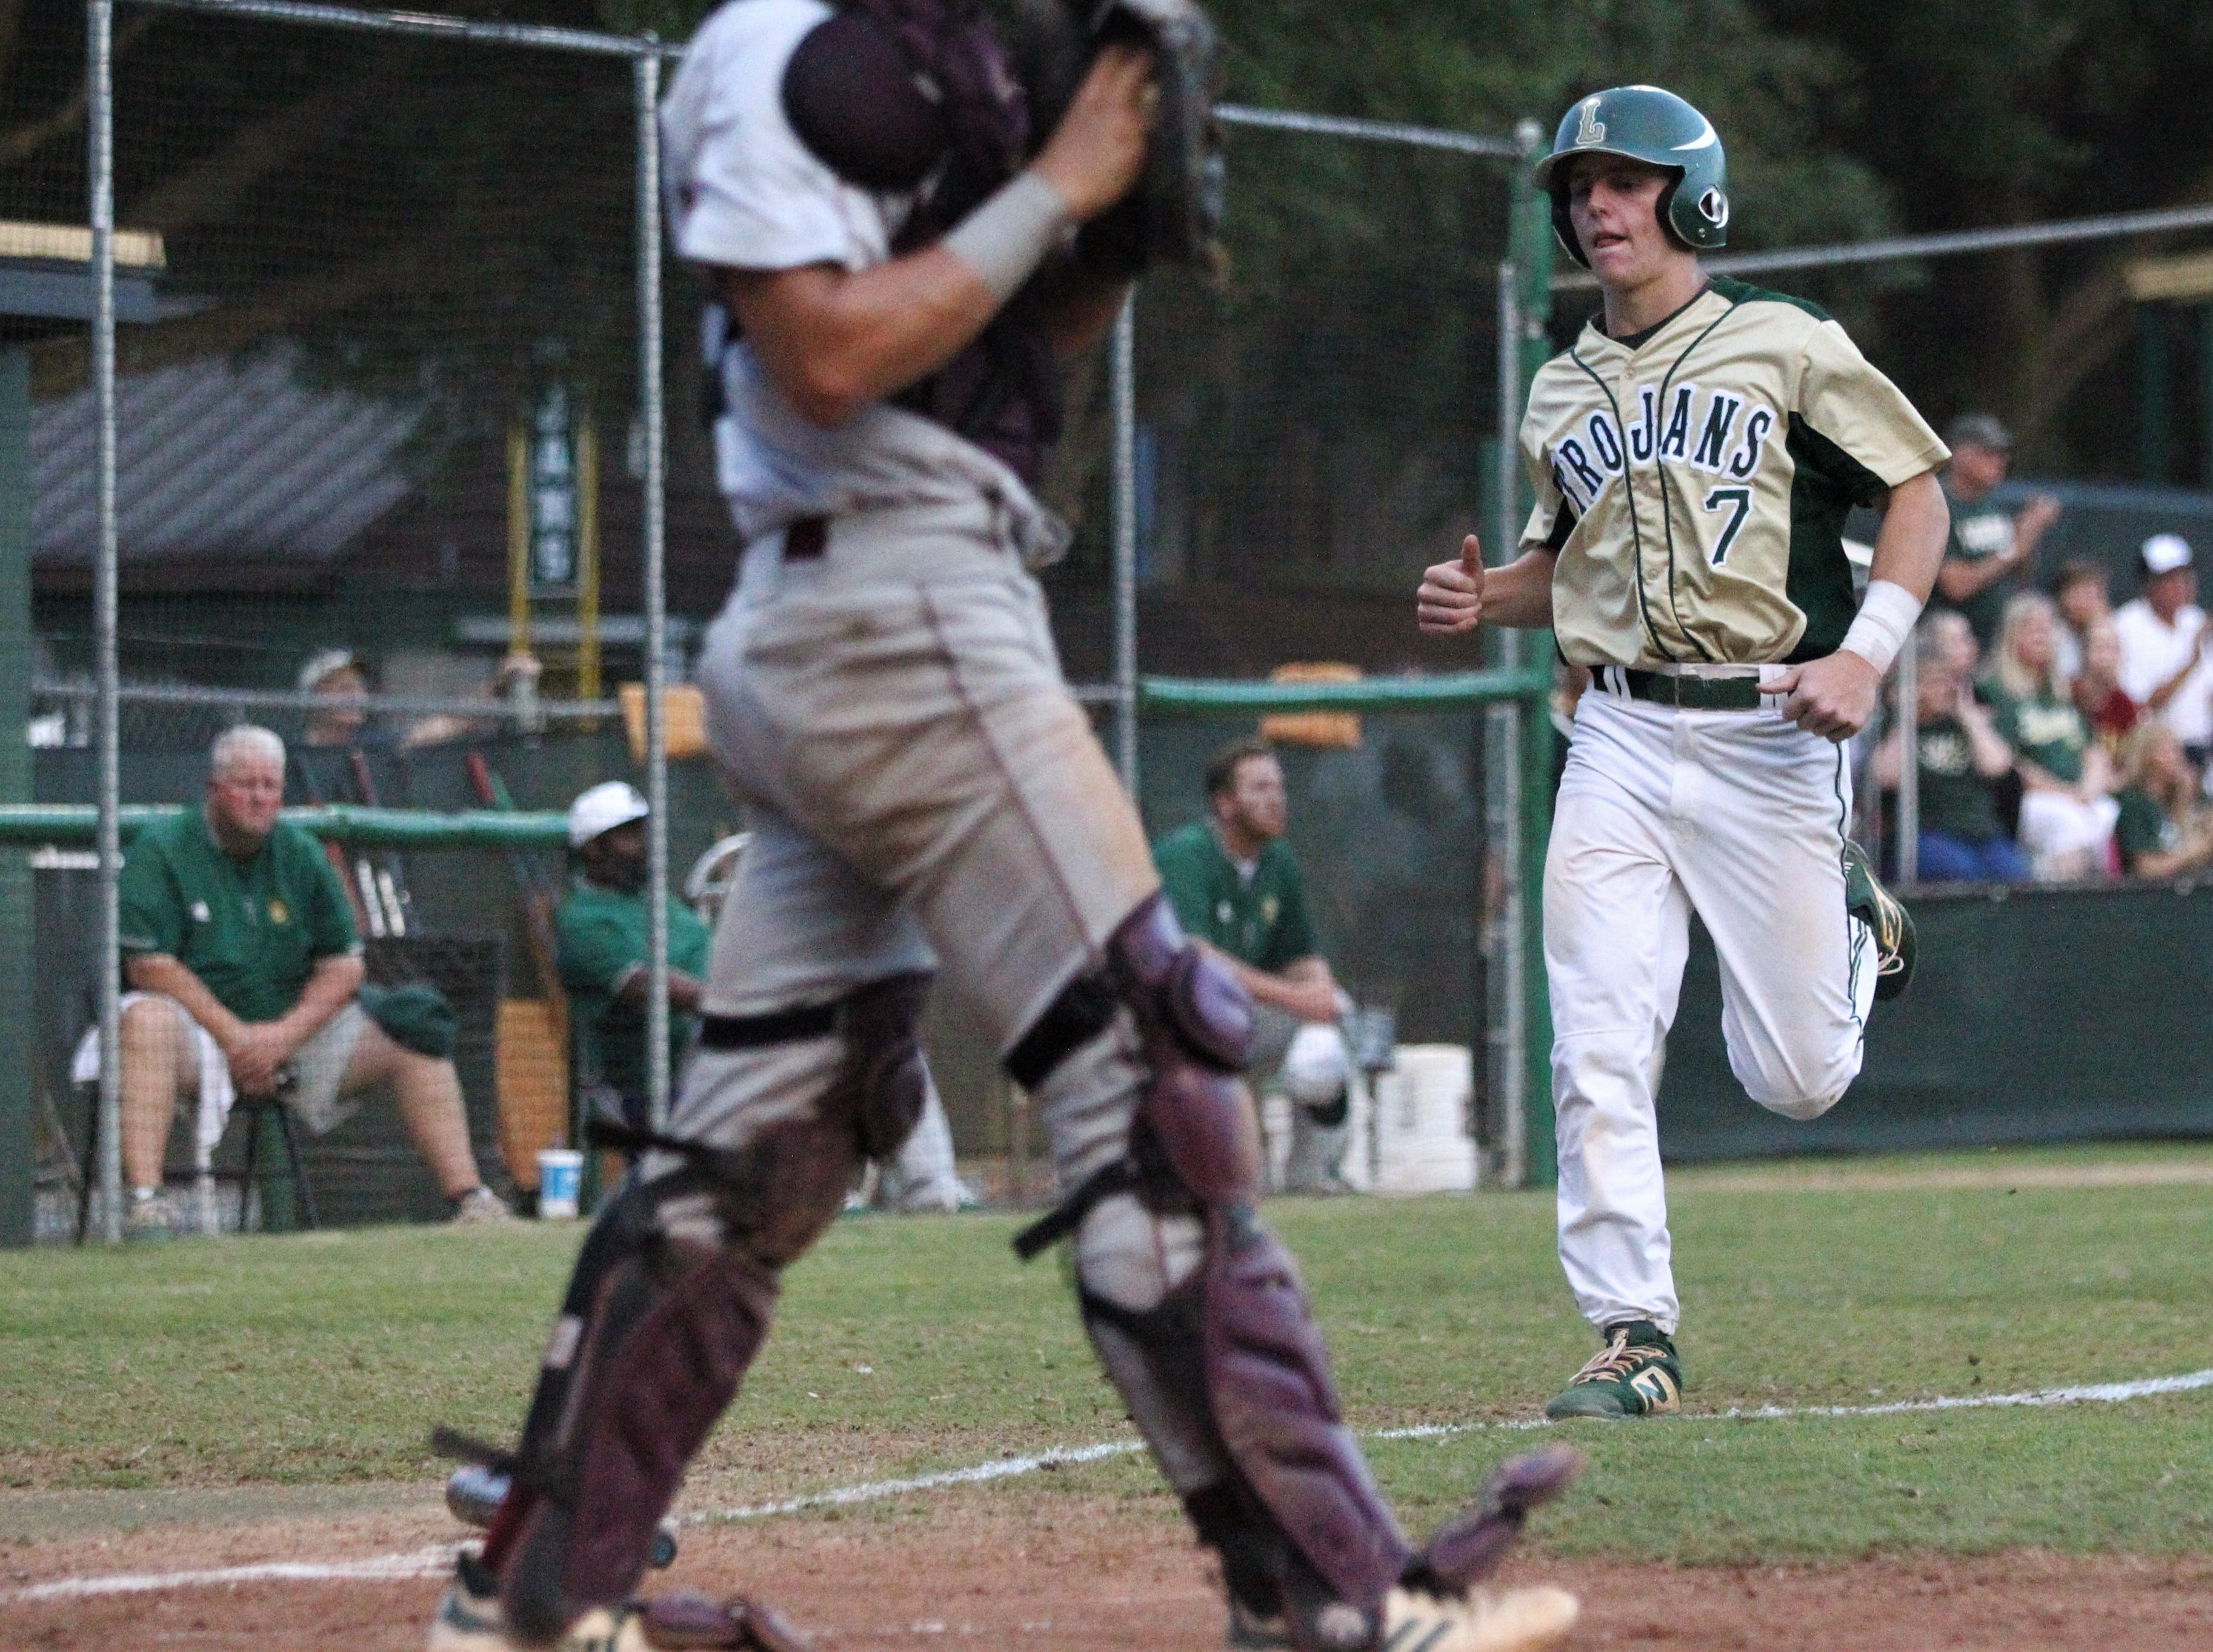 Lincoln junior Justin Bragdon trots home to score a run on a bases-loaded walk as Lincoln baseball beat Chiles 5-4  in 10 innings during a District 2-8A championship game on Thursday, May 9, 2019.